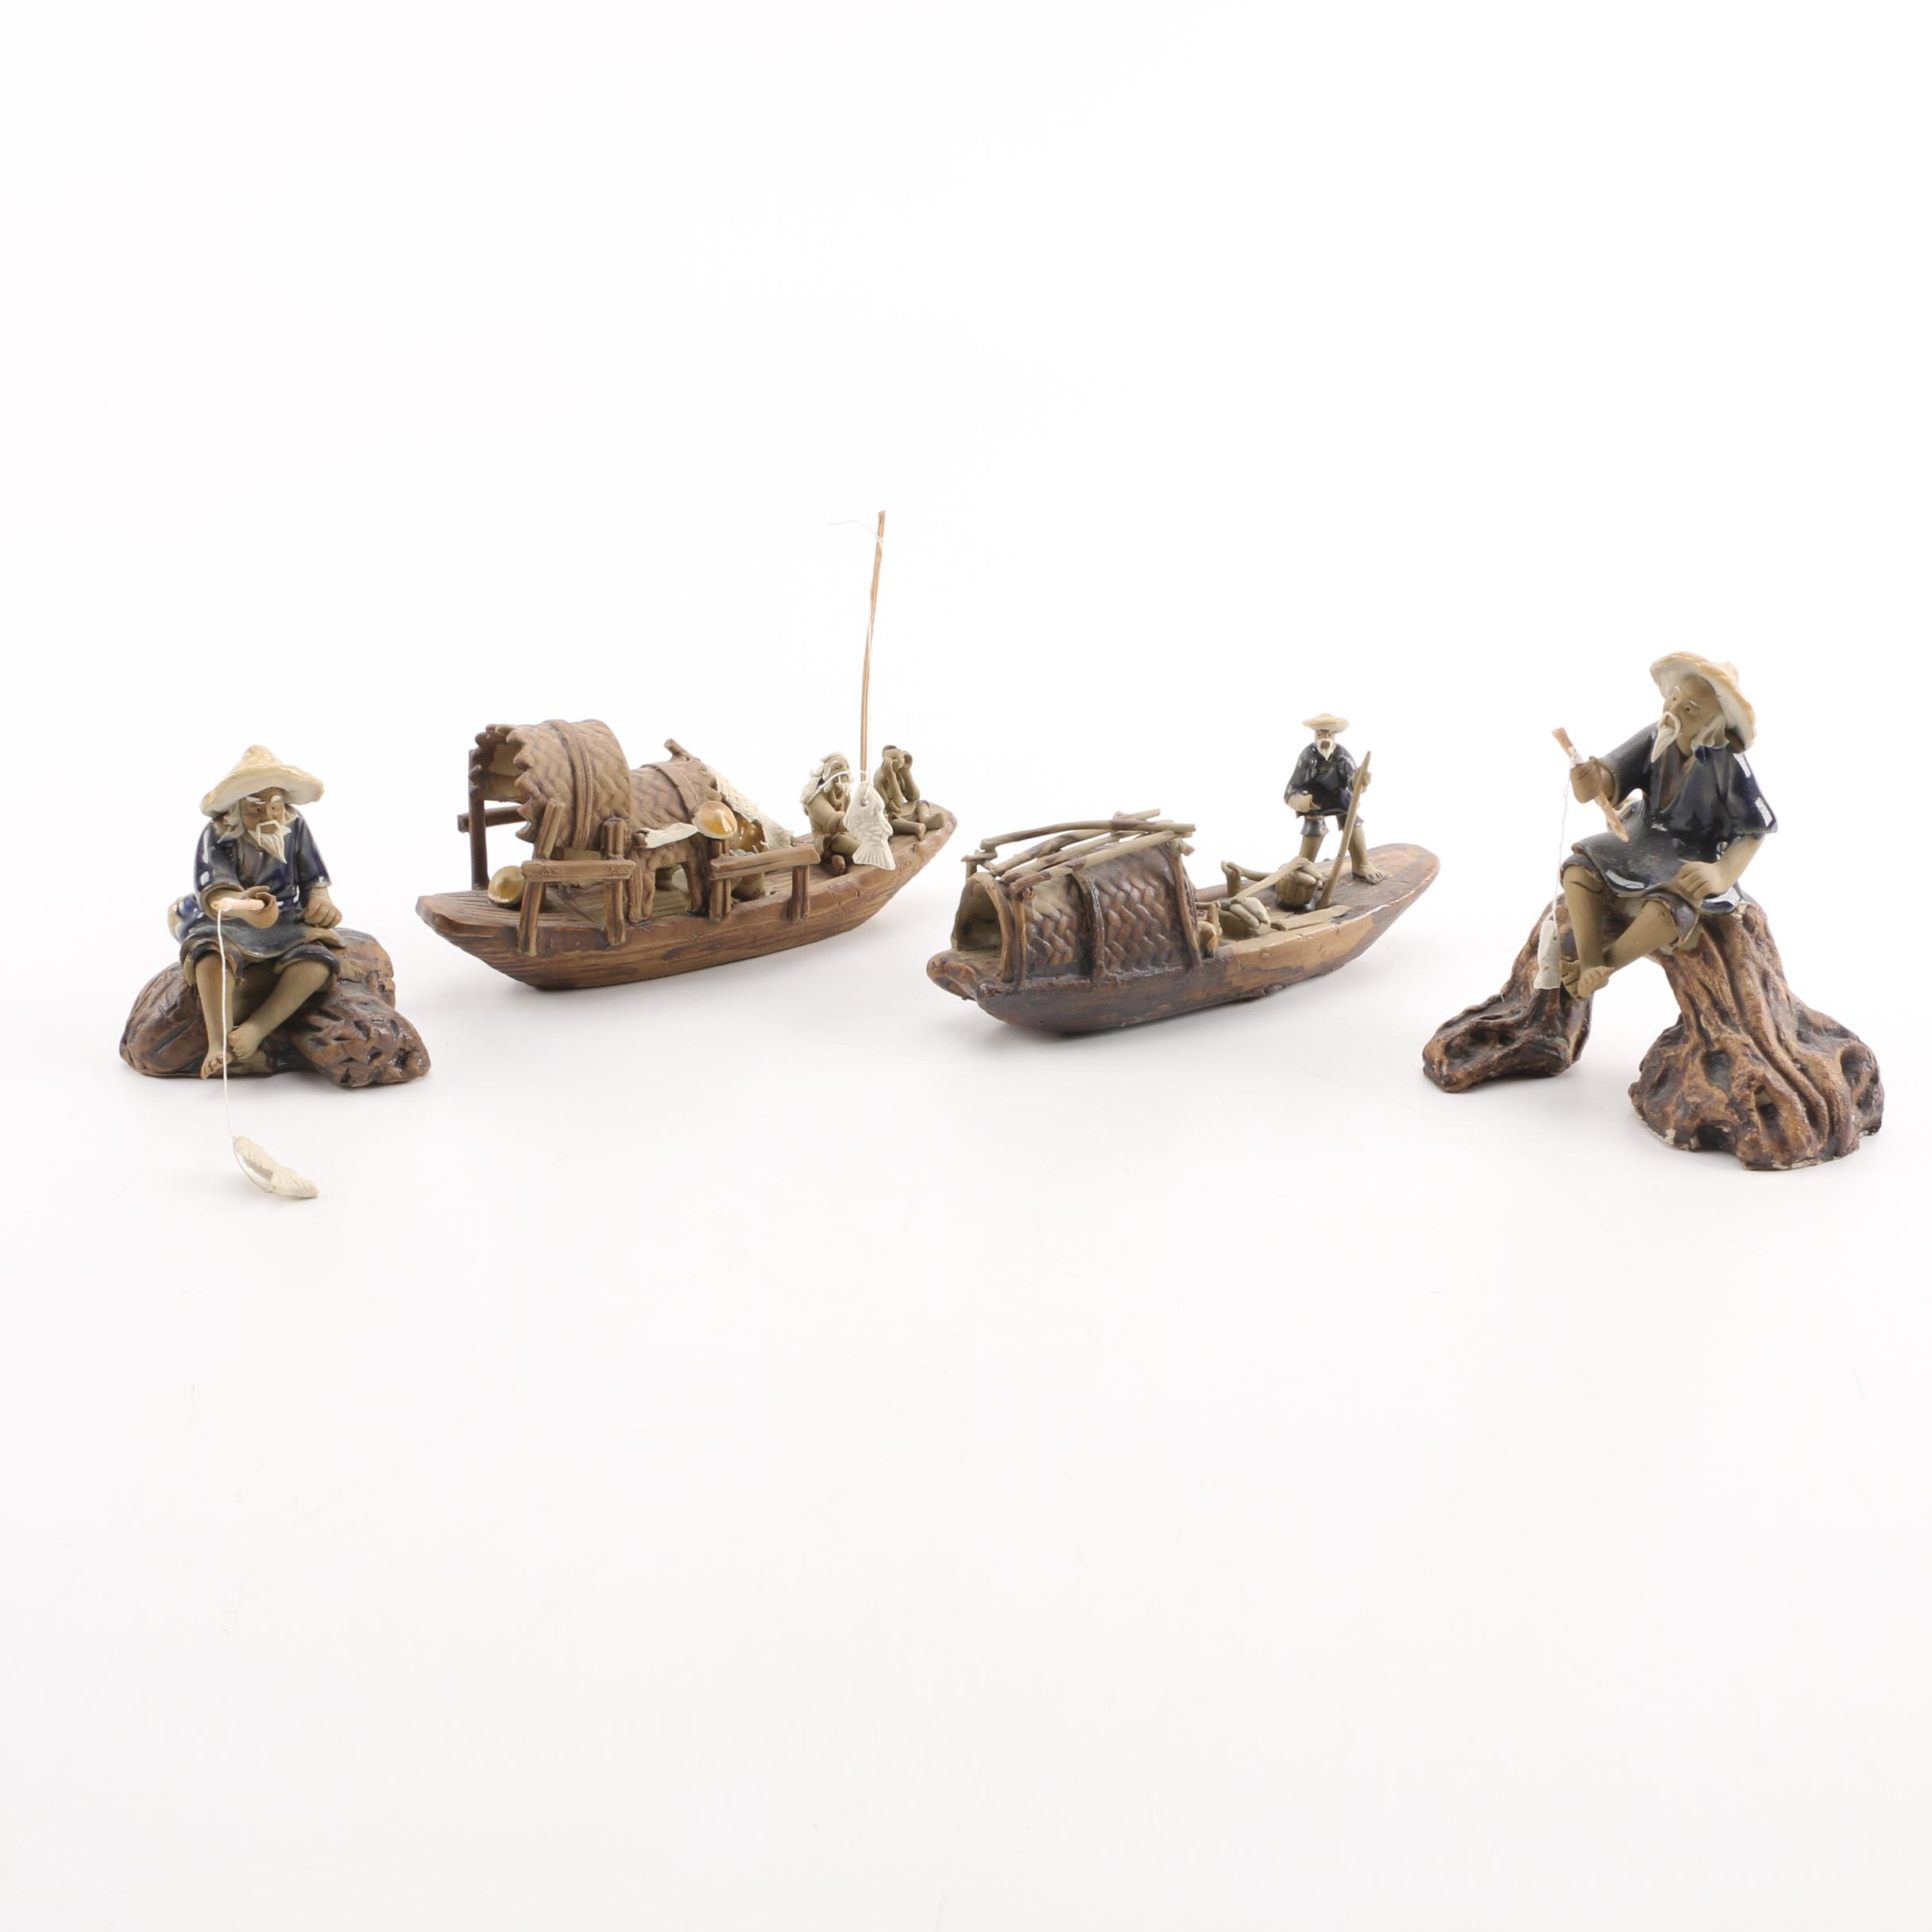 Chinese Hand Sculpted Clay Fishing Themed Figurines